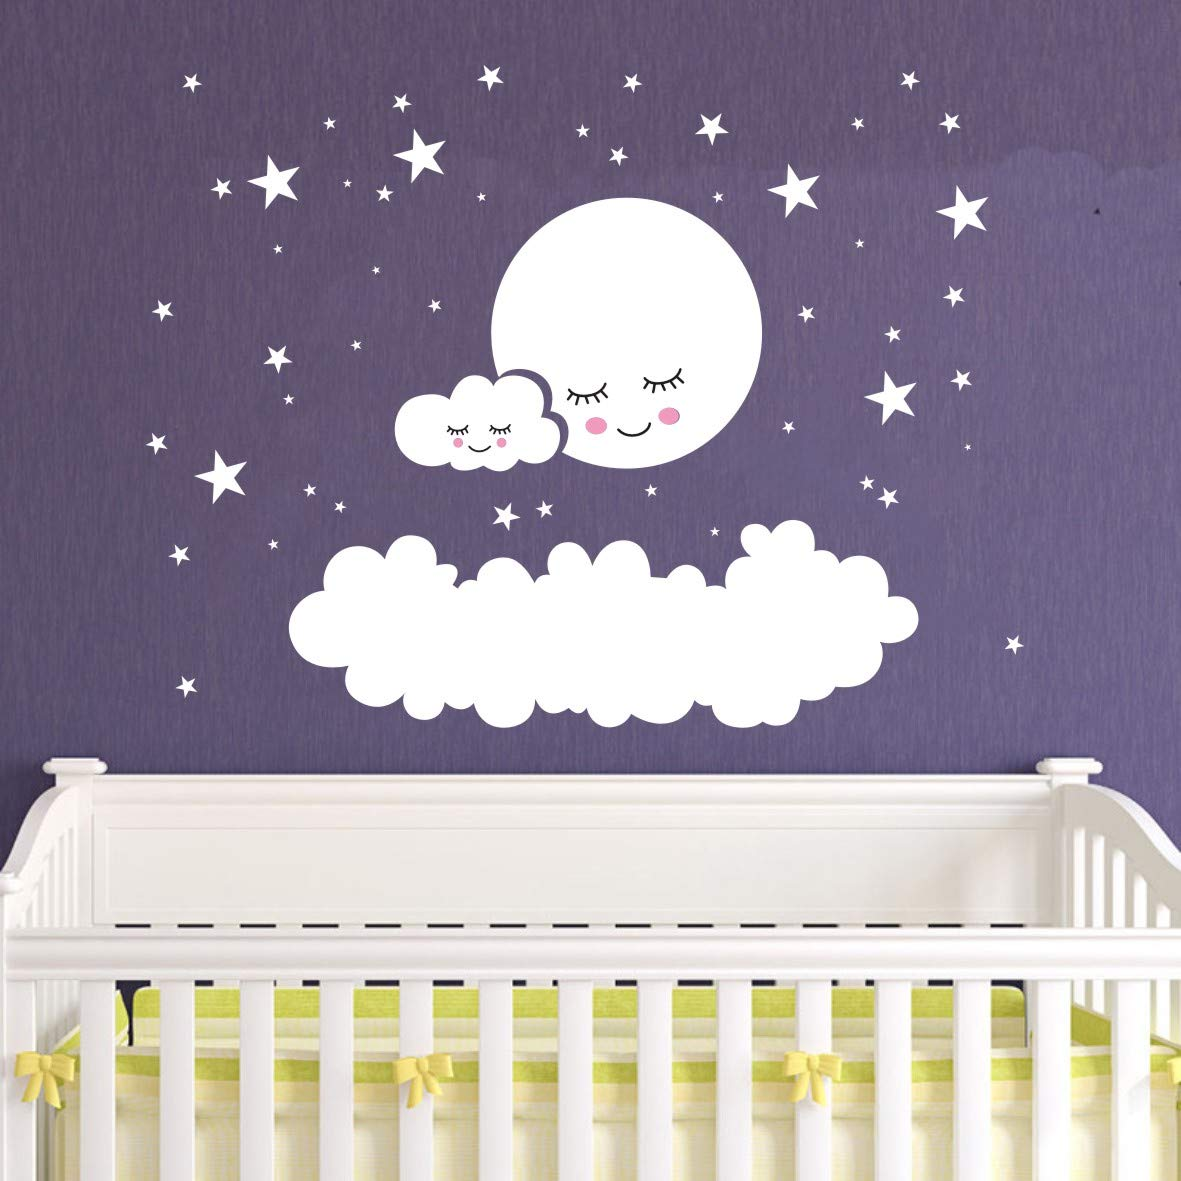 Kids Room Decor Big Clouds Moon Stars Wall Stickers Sweet Smile Moon Nursery Room Bedroom Wall Mural Art Vinyl Wall Decor Stickers LY1385(White Sheet Size is 57x42cm)